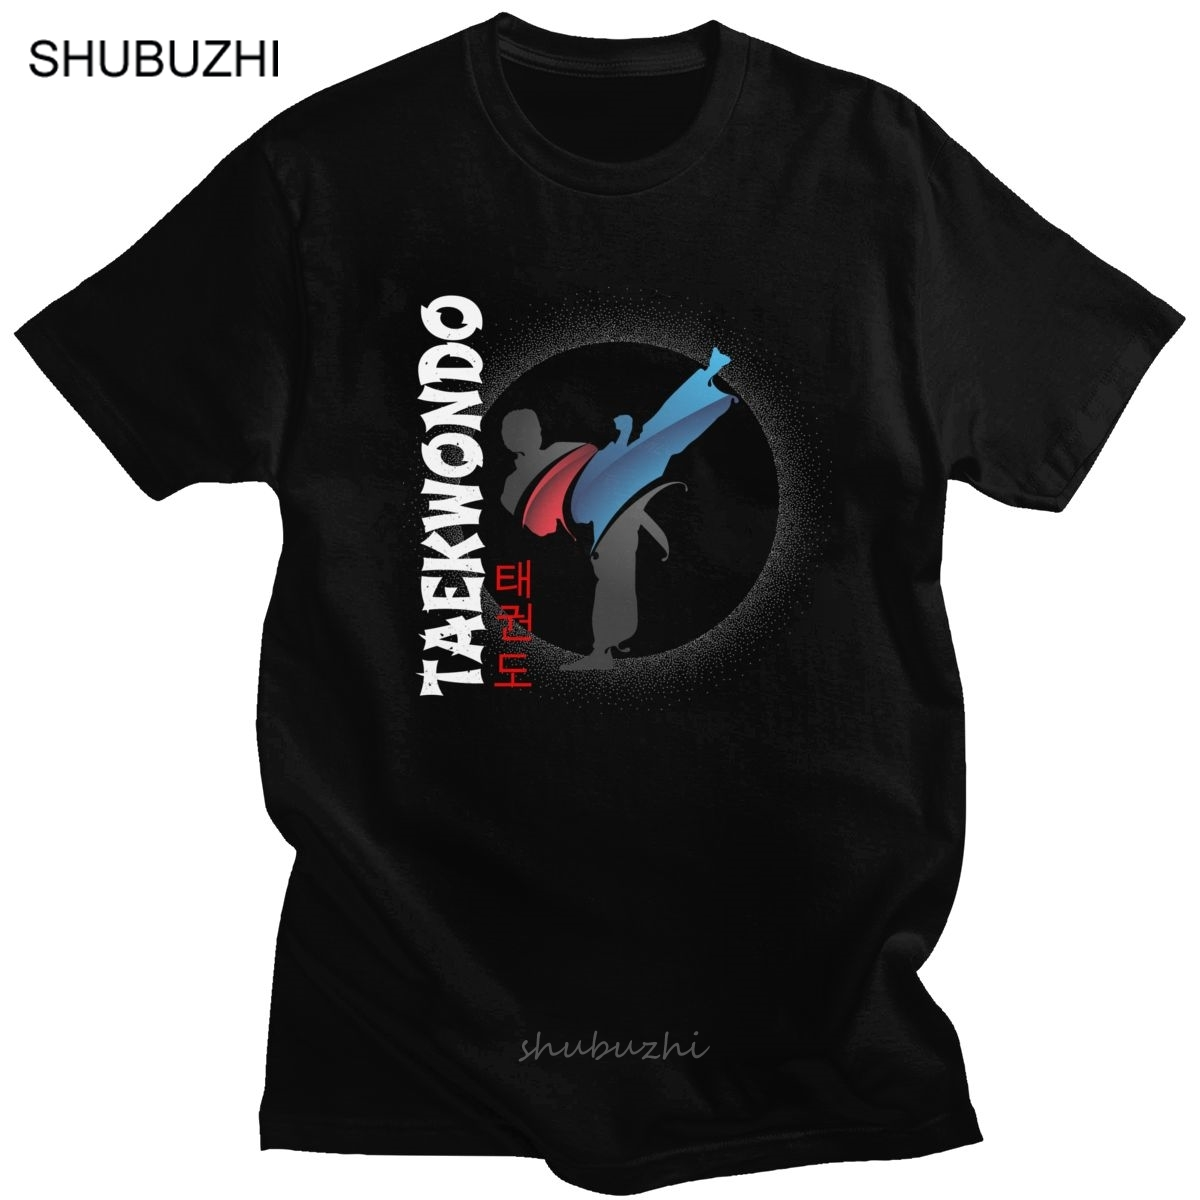 Martial Artist Side Kick TaeKwondo Tshirt Men's Pure Cotton Tae Kwon Do Tee Shirt Crew Neck Short Sleeved Summer T-shirt Clothes image